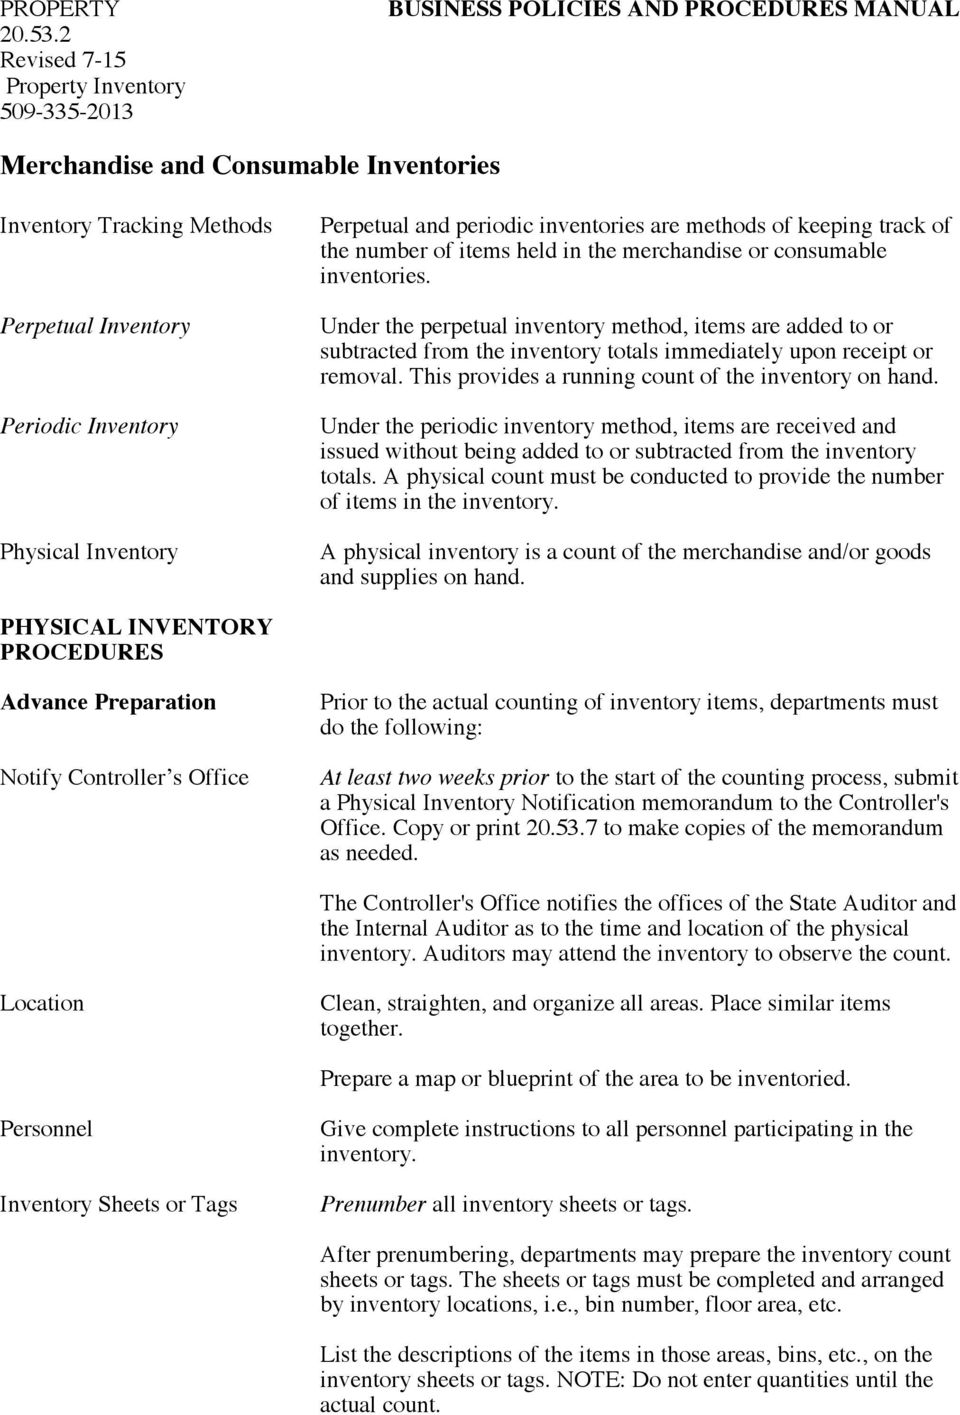 Merchandise And Consumable Inventories Pdf Free Download